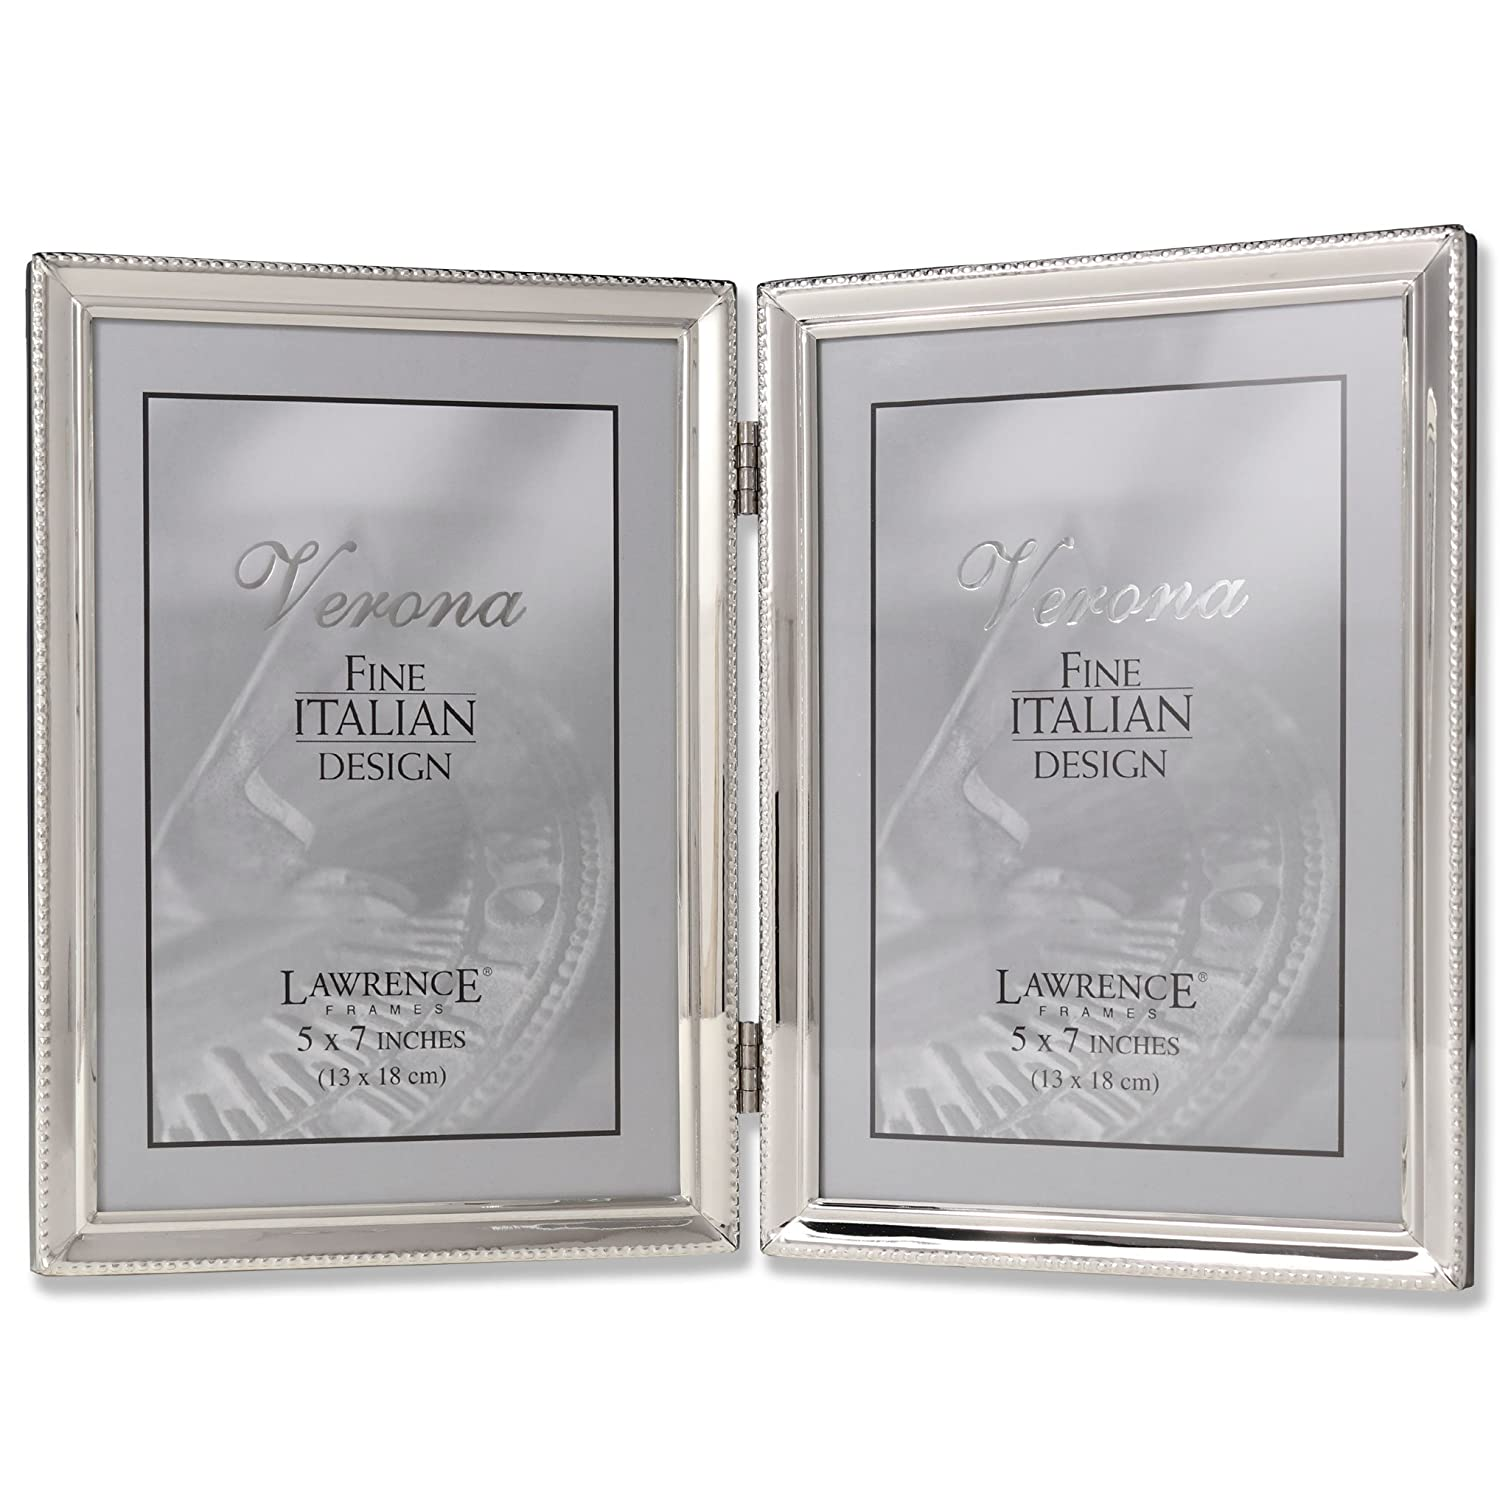 Amazon lawrence frames polished silver plate 5x7 hinged amazon lawrence frames polished silver plate 5x7 hinged double picture frame bead border design single frames jeuxipadfo Image collections